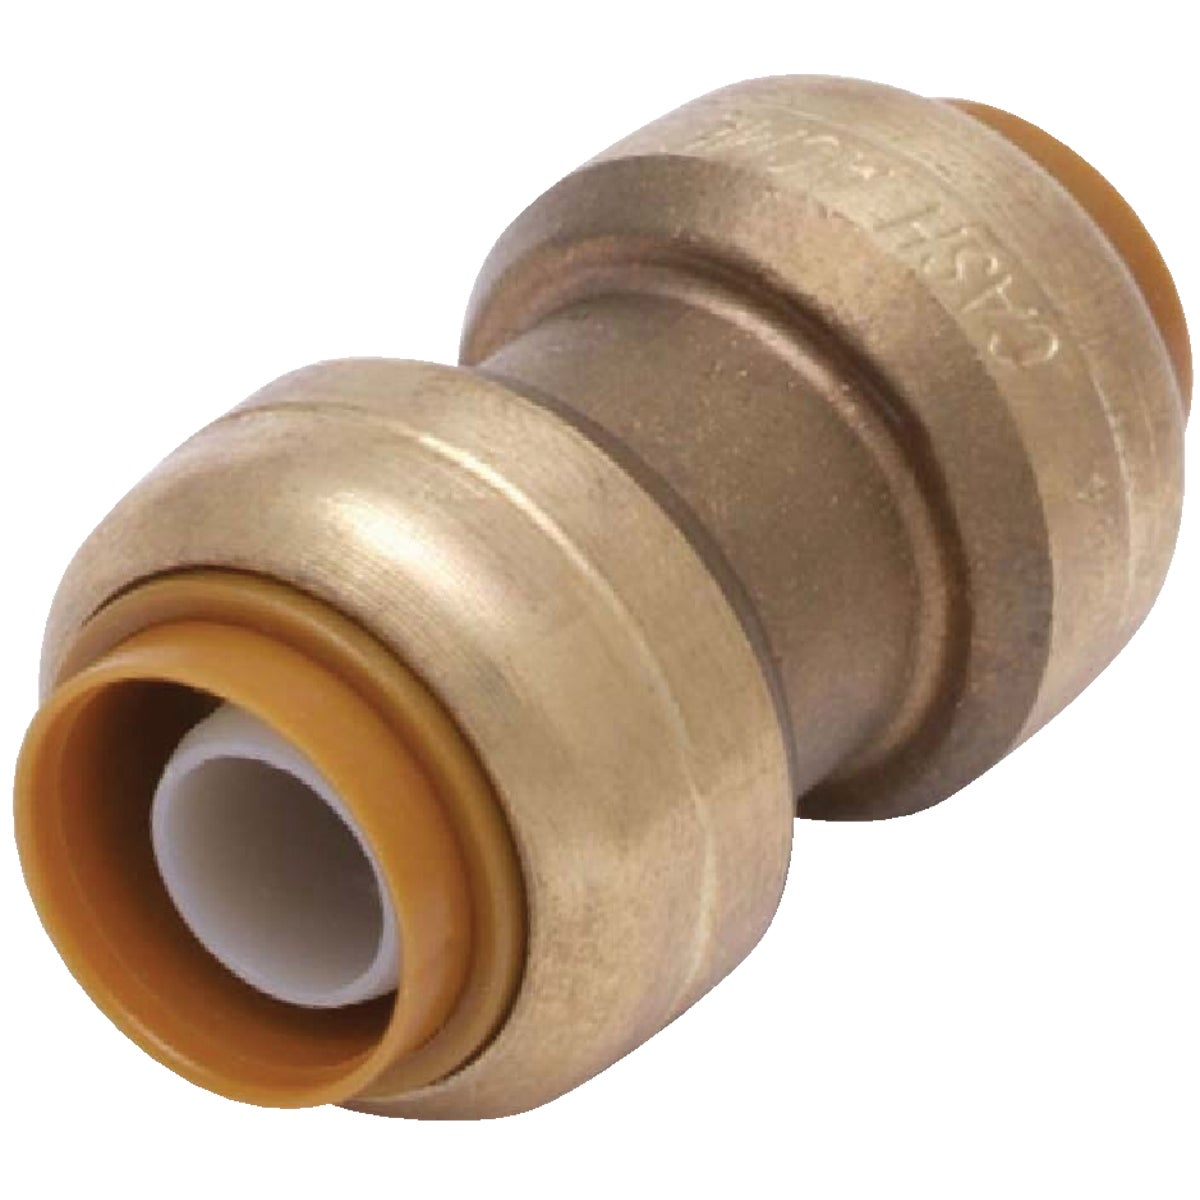 "1"" PUSH COUPLING - U020LFA by Cash Acme"